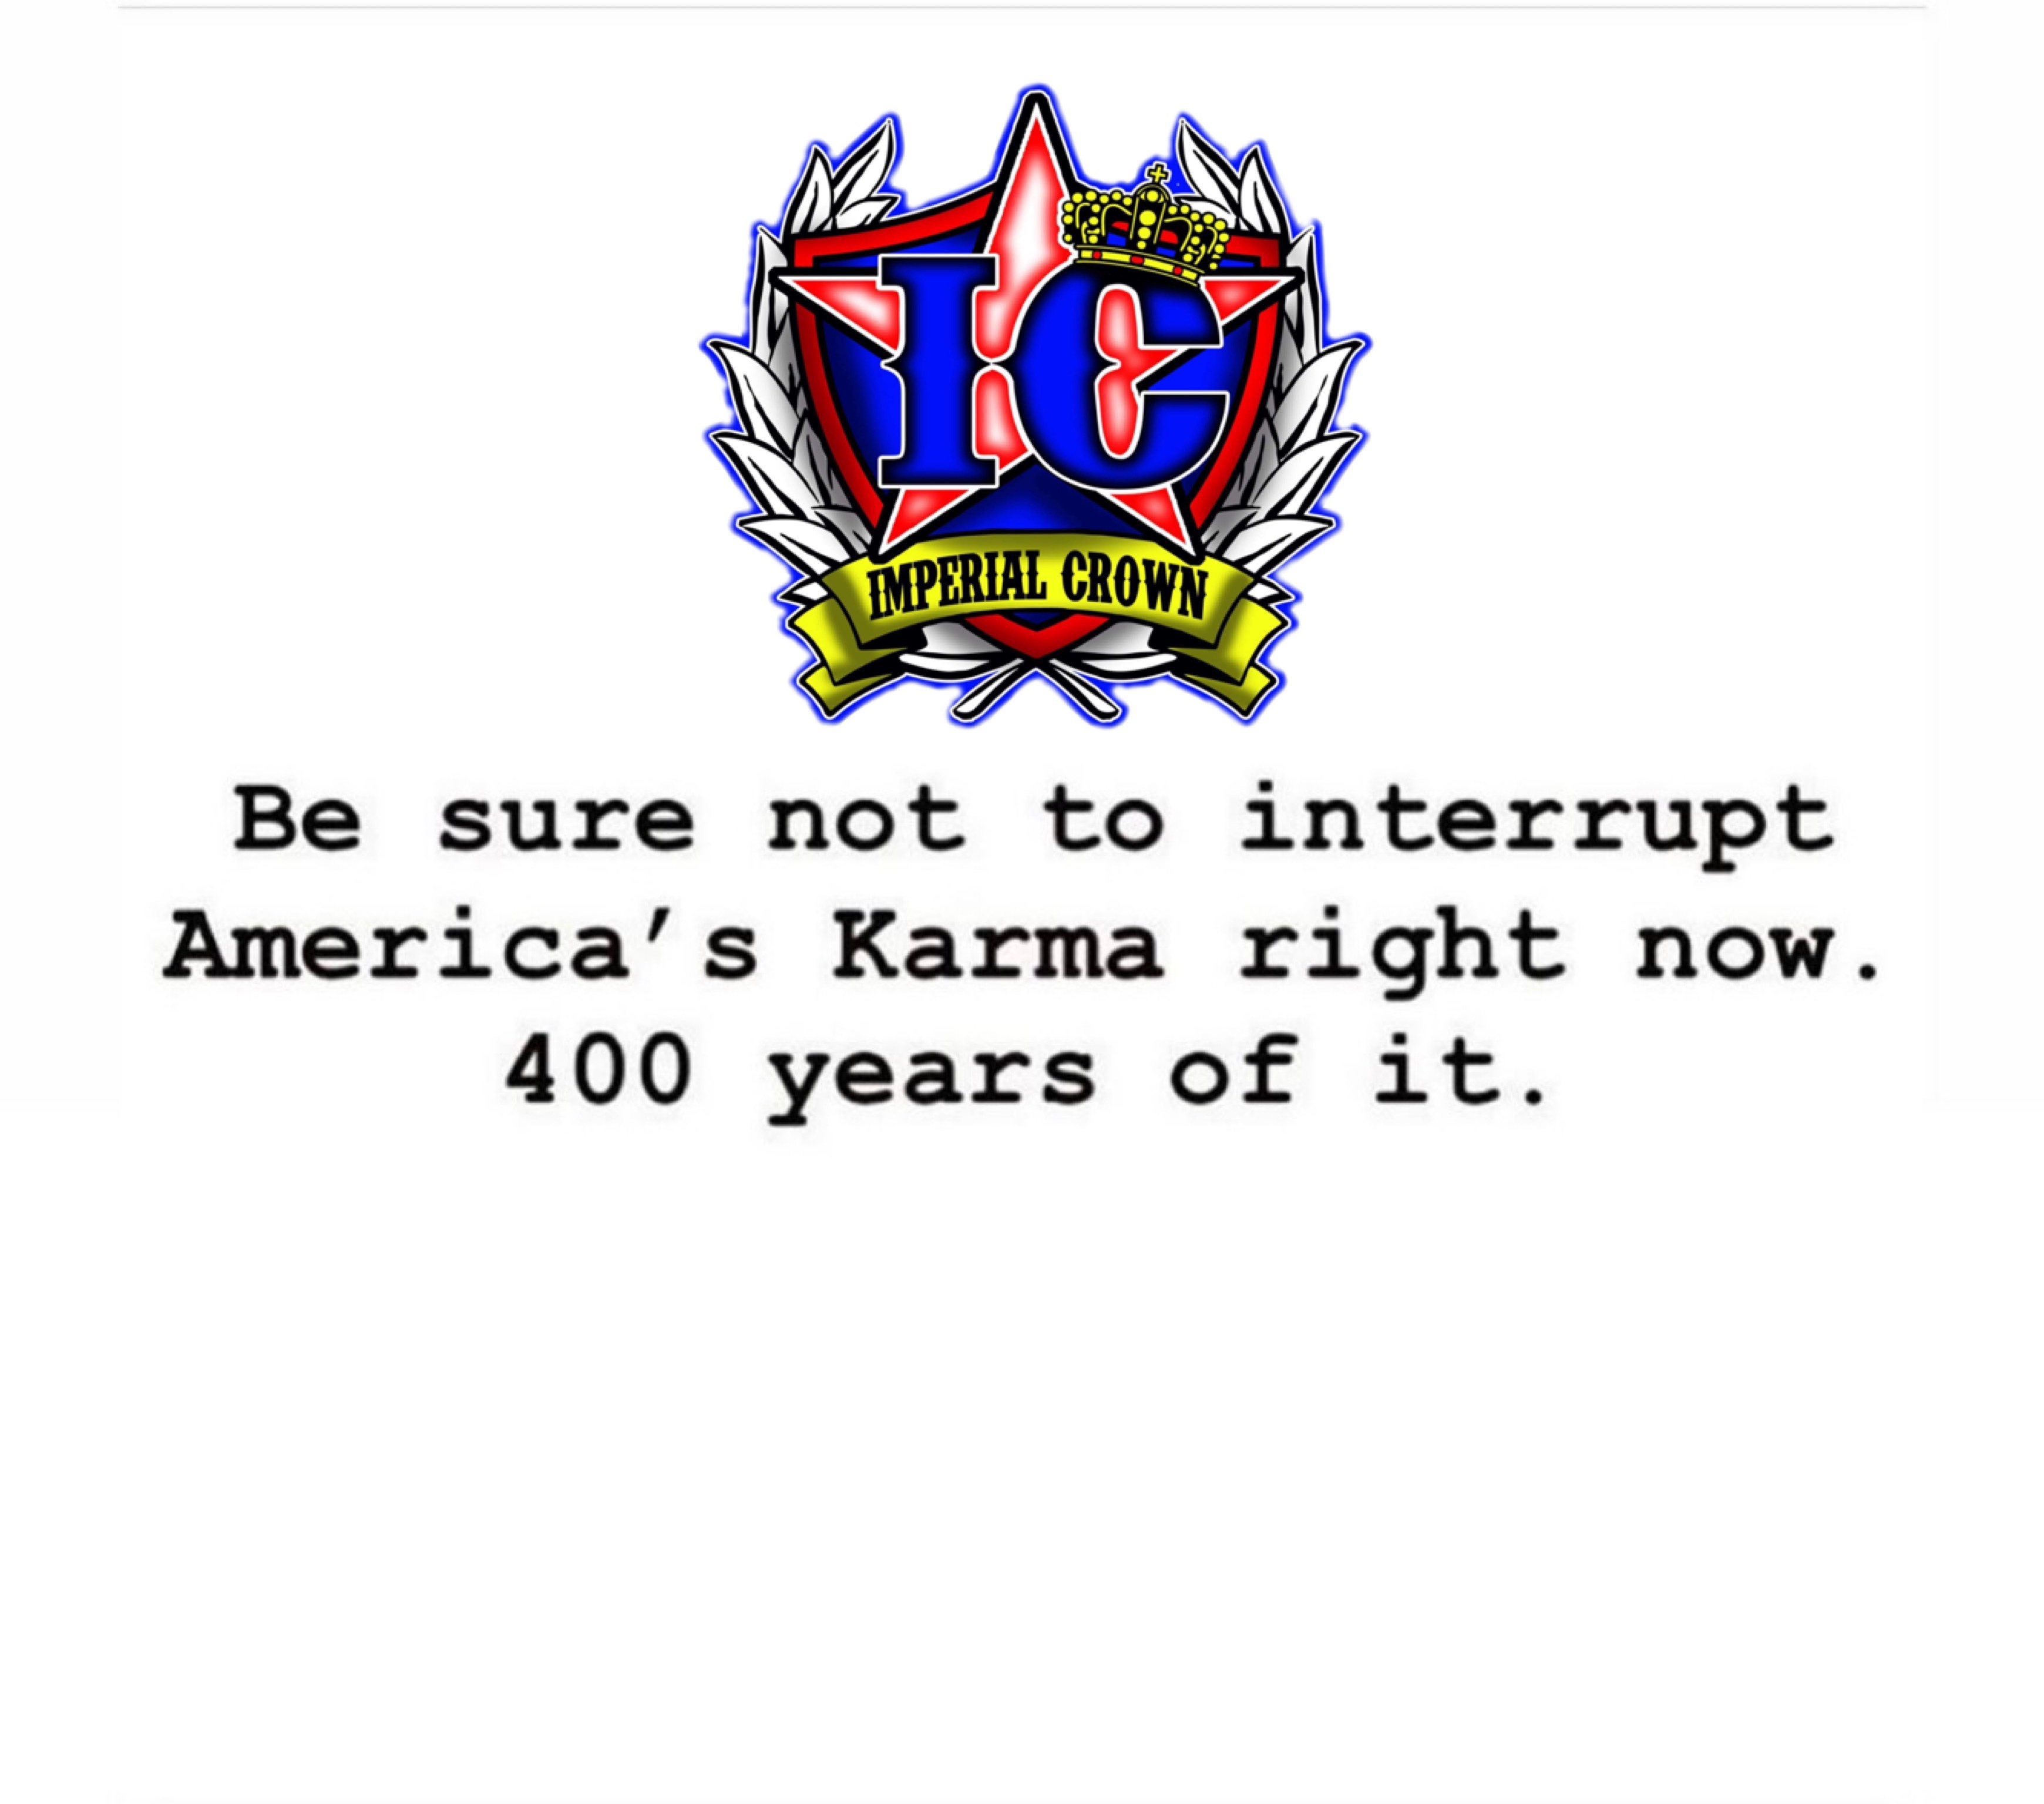 Be sure not to interrupt America's karma right now